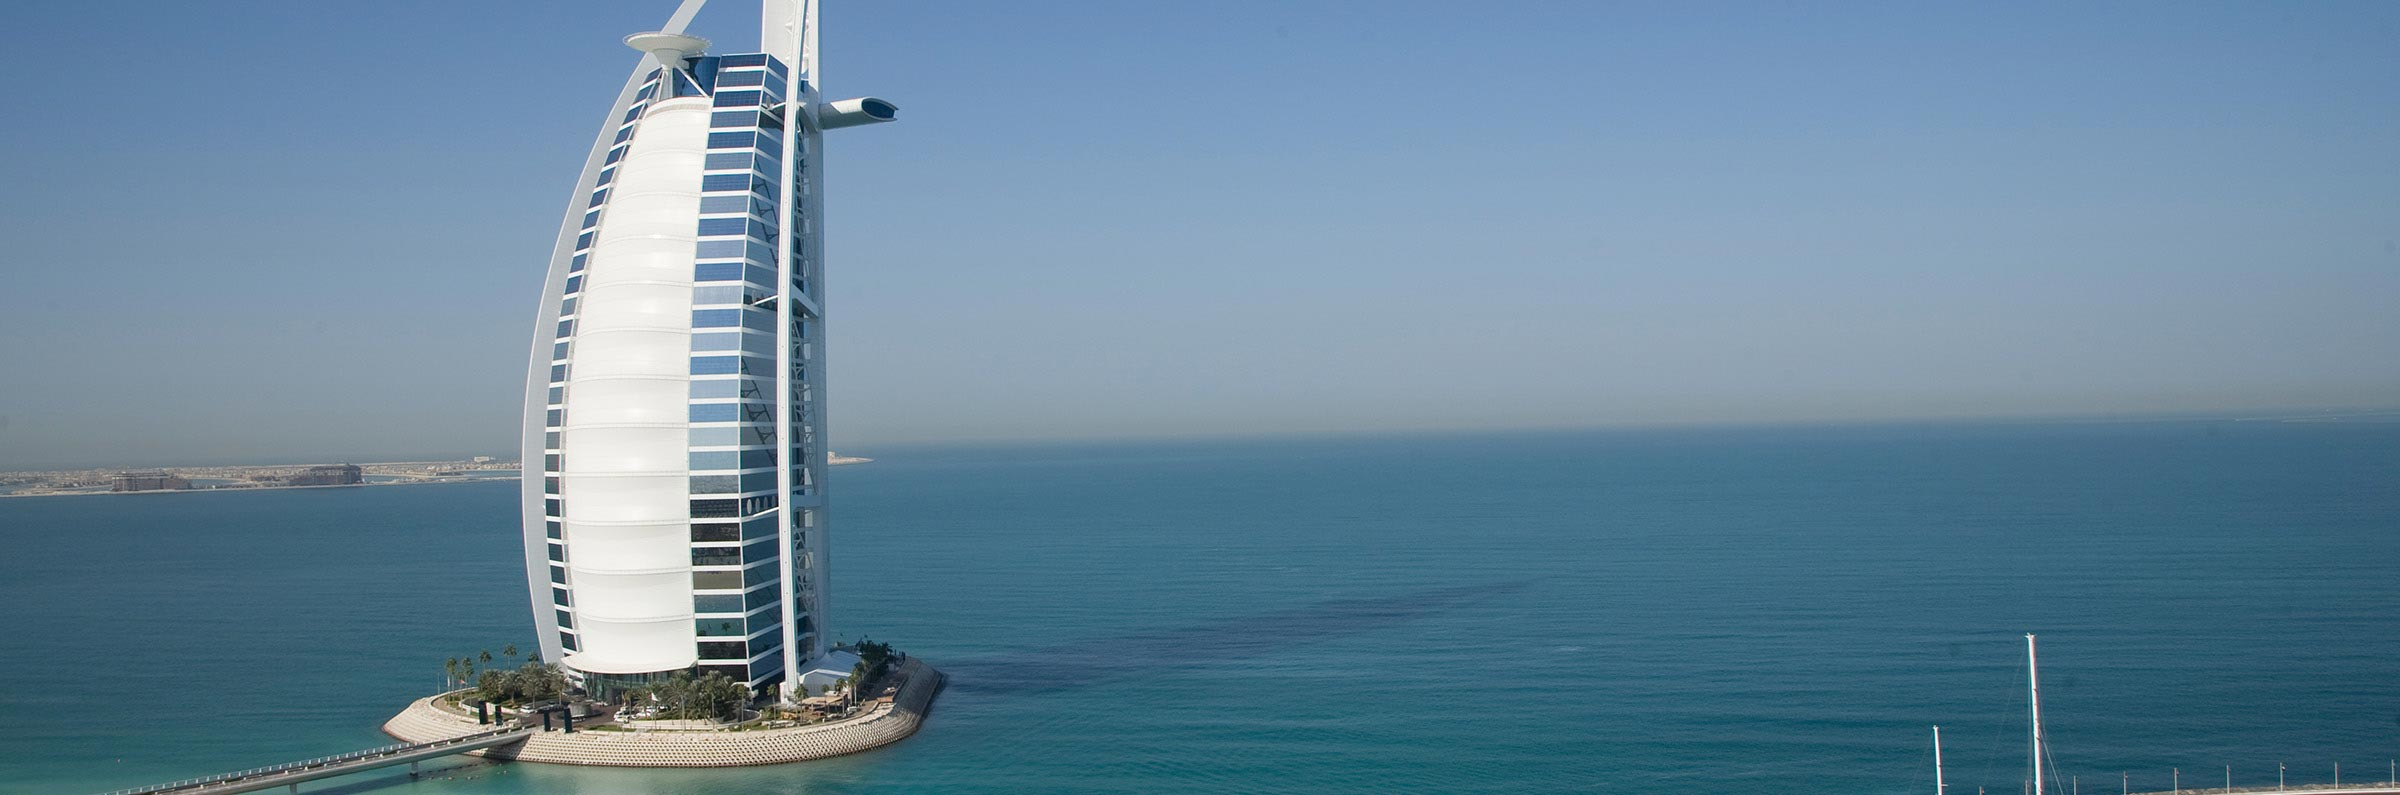 Sights and attractions in Dubai